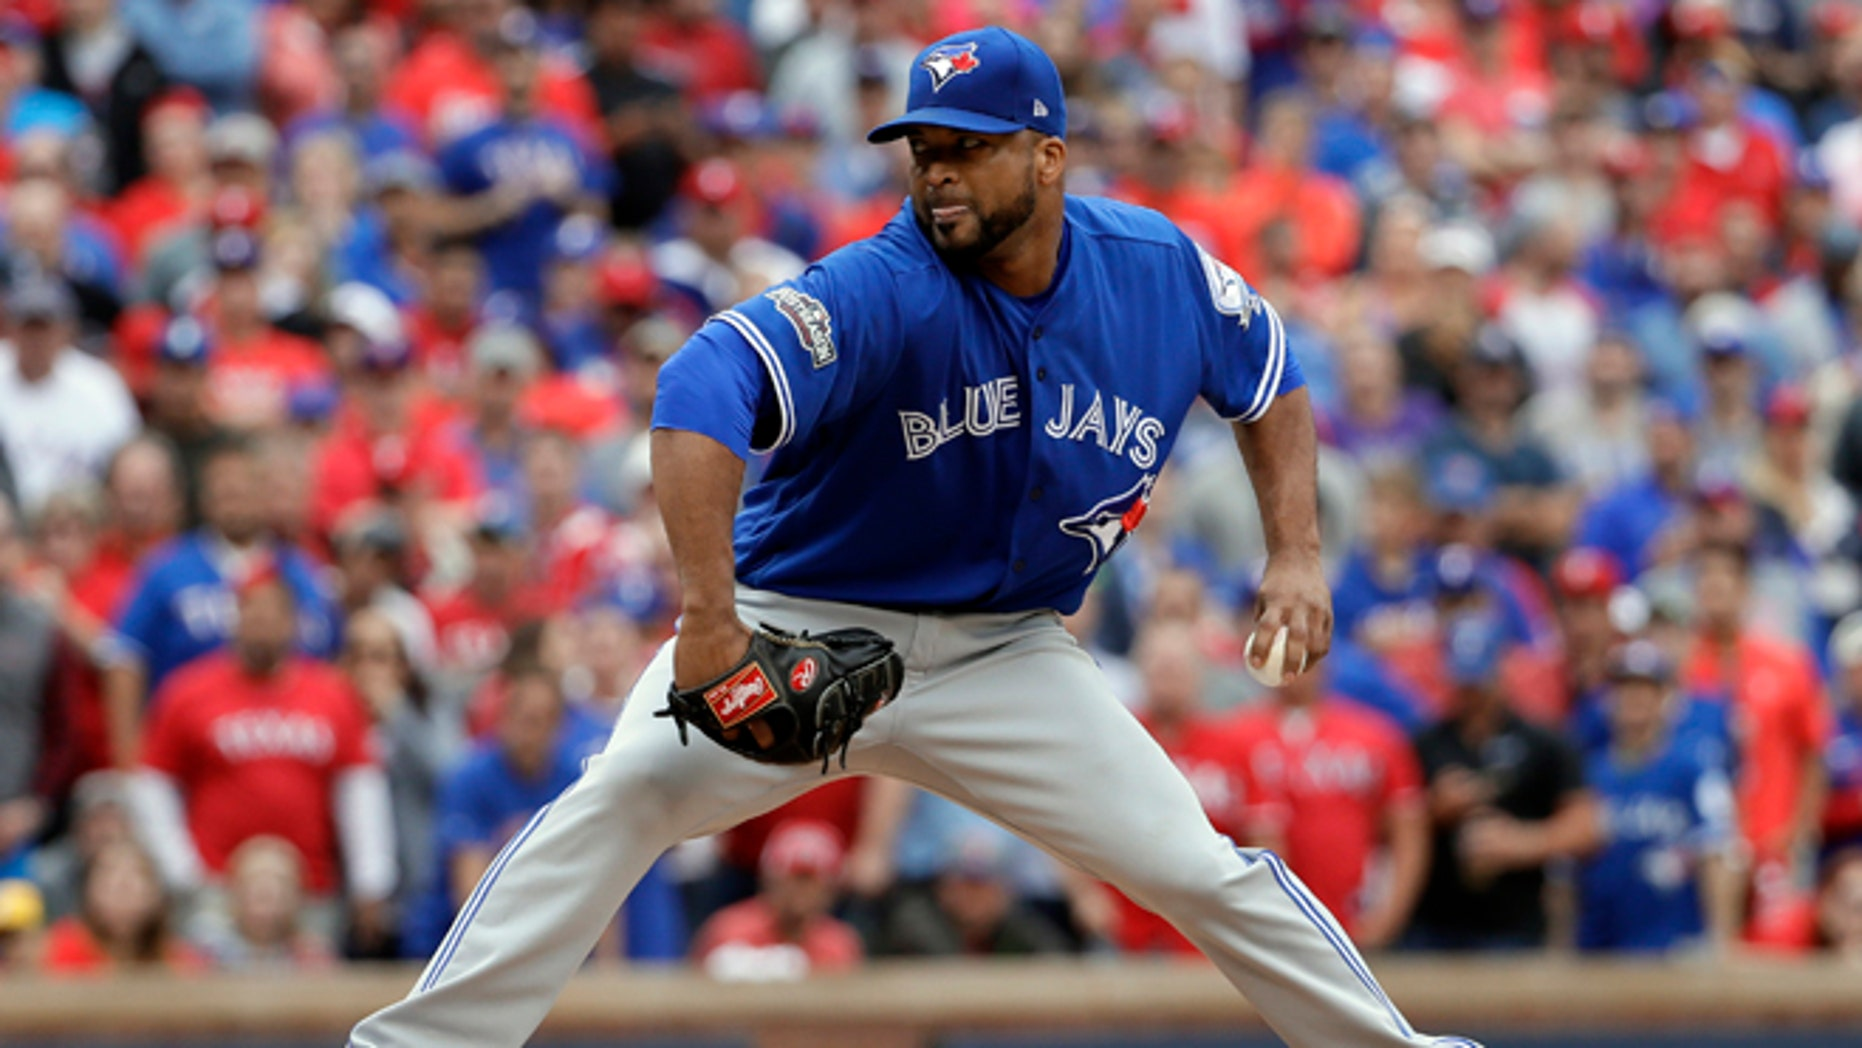 Toronto Blue Jays relief pitcher Francisco Liriano throws against the Texas Rangers in the eighth inning of Game 2 of baseball's American League Division Series, Friday, Oct. 7, 2016, in Arlington, Texas. (AP Photo/David J. Phillip)